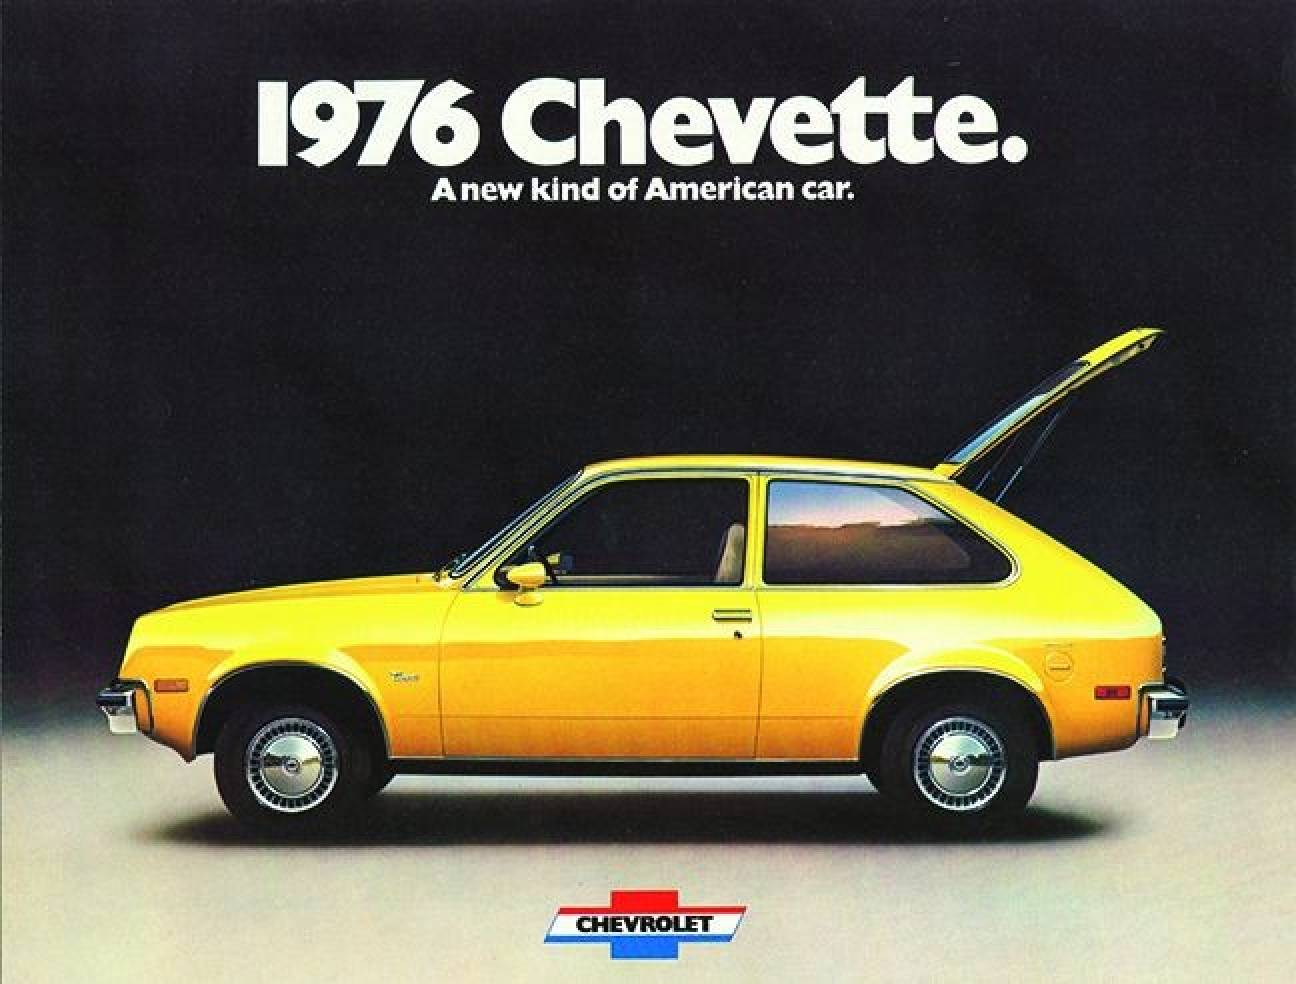 In some ways the chevy chevette had a lot in common with a new mercedes or similar high end luxury car